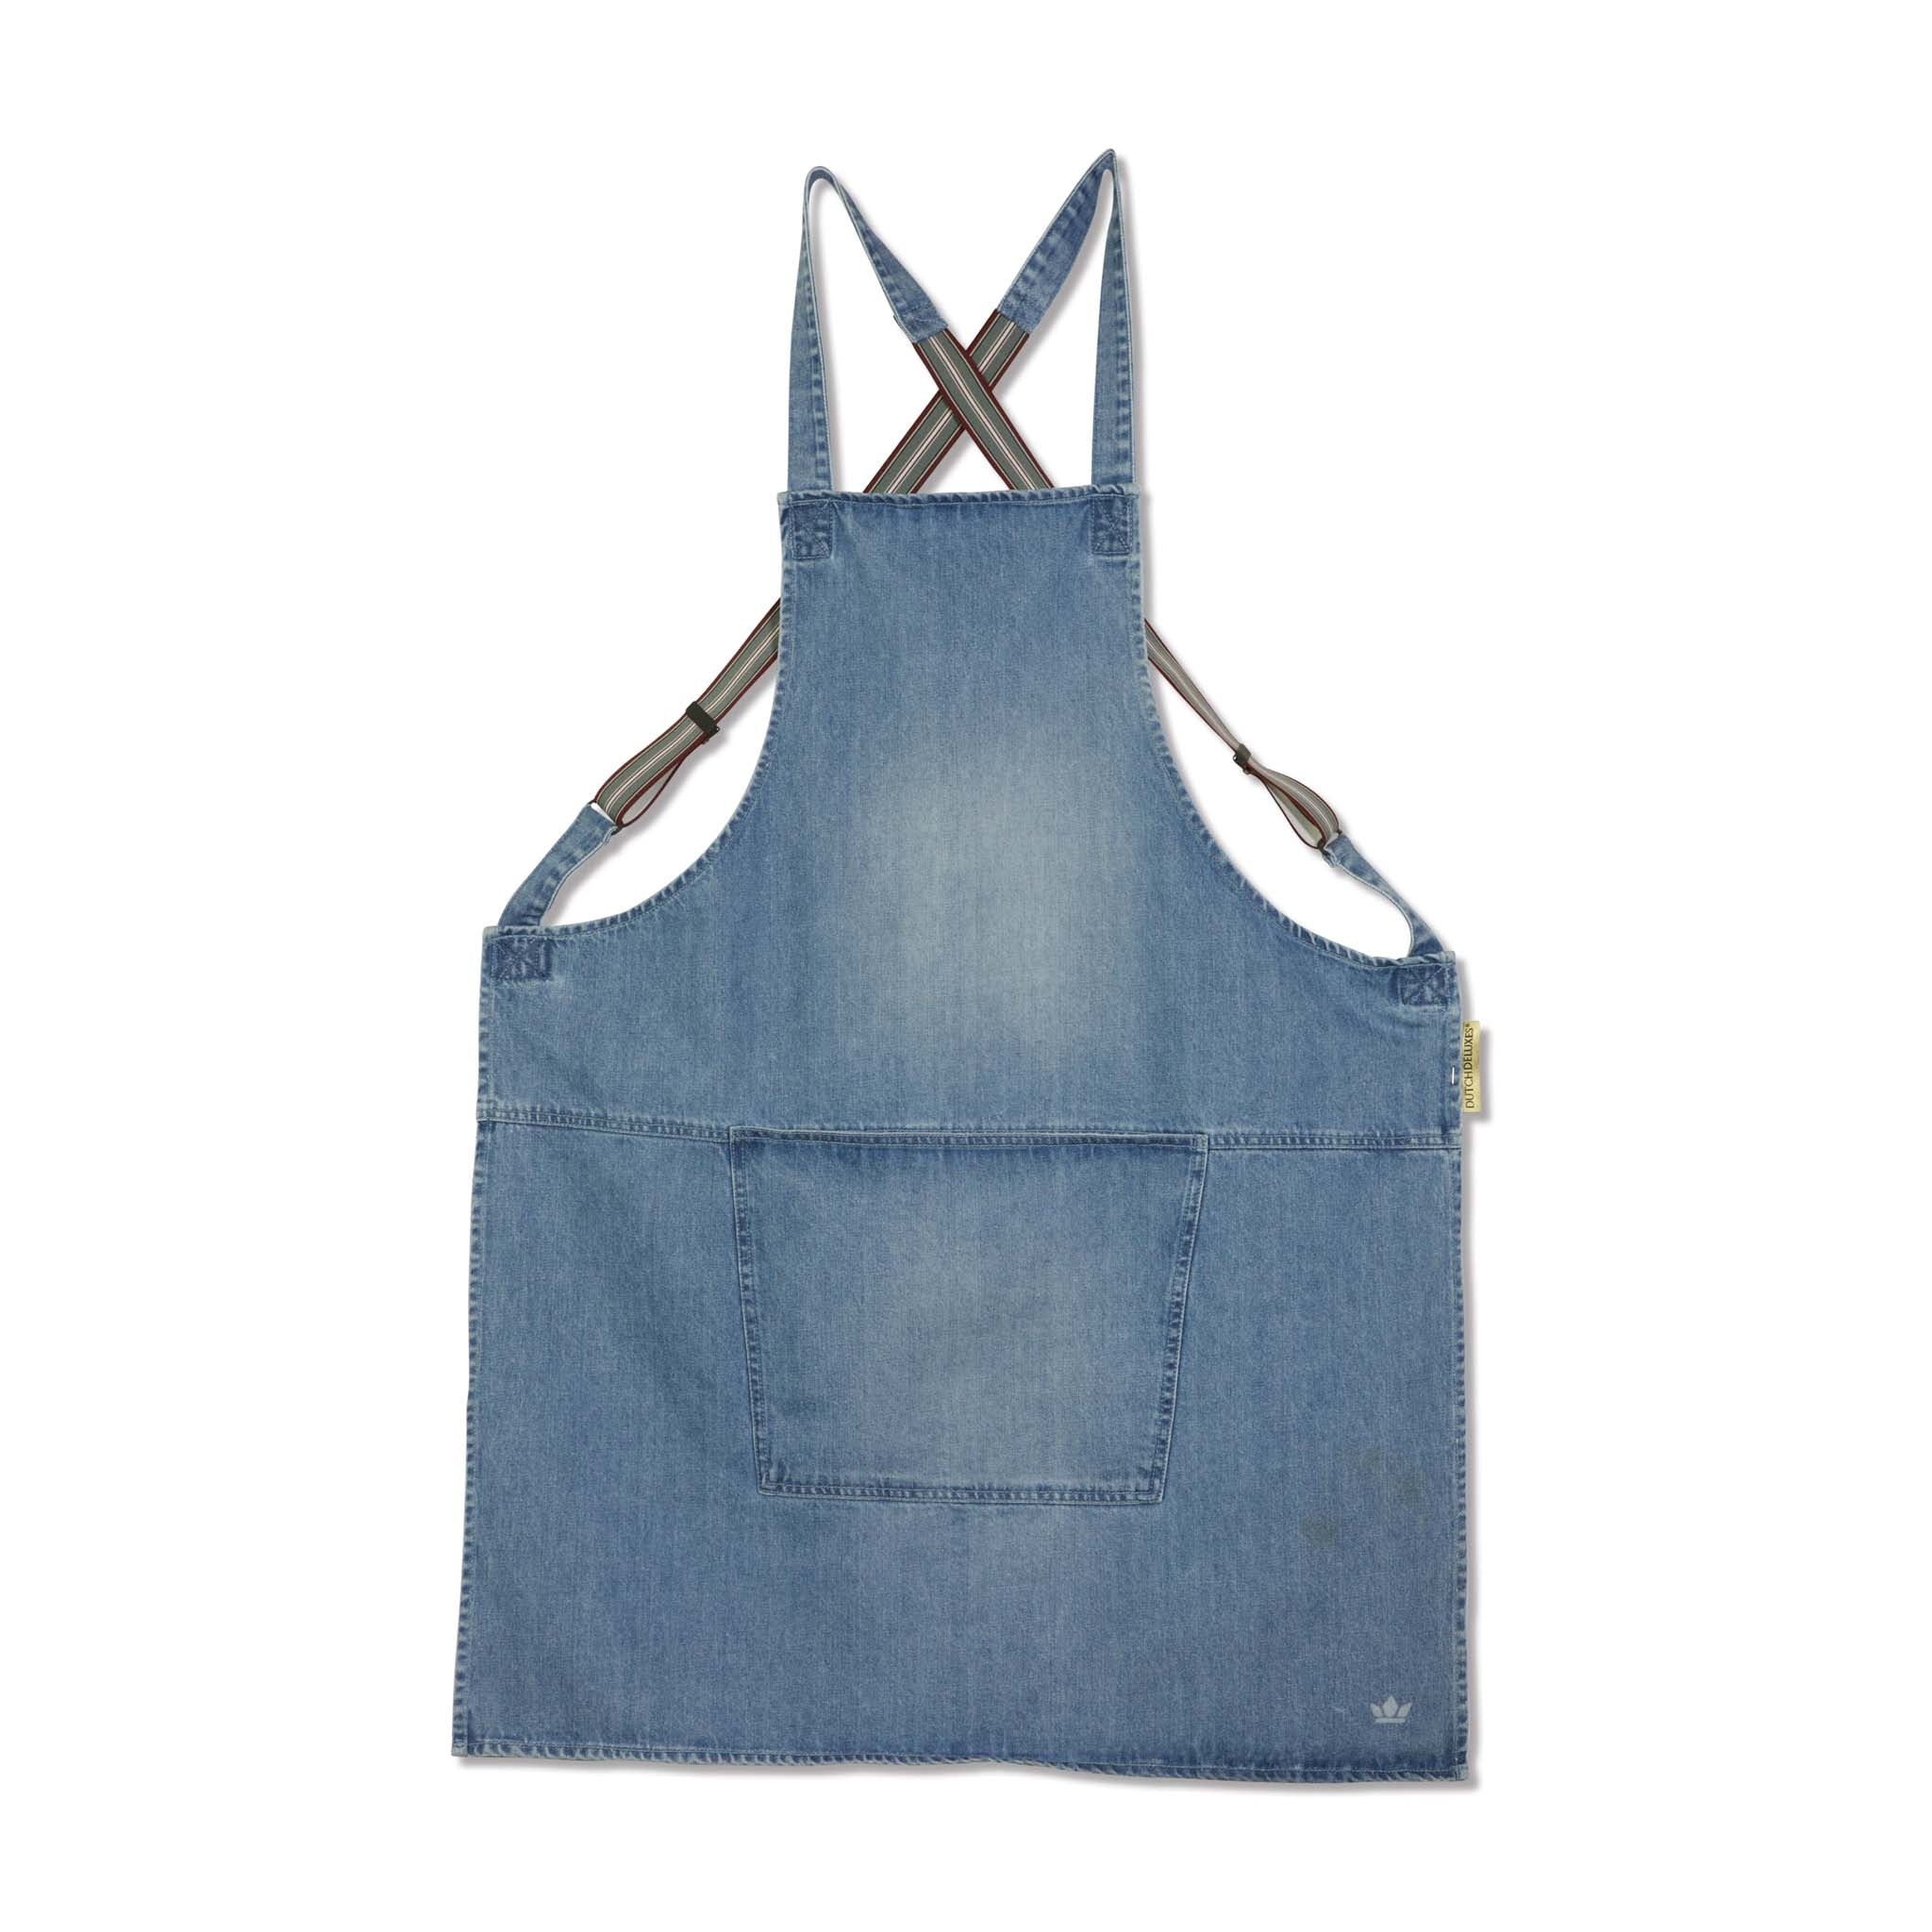 Dutchdeluxes Denim Suspender Apron in Blue Cookware Kitchen Clothing